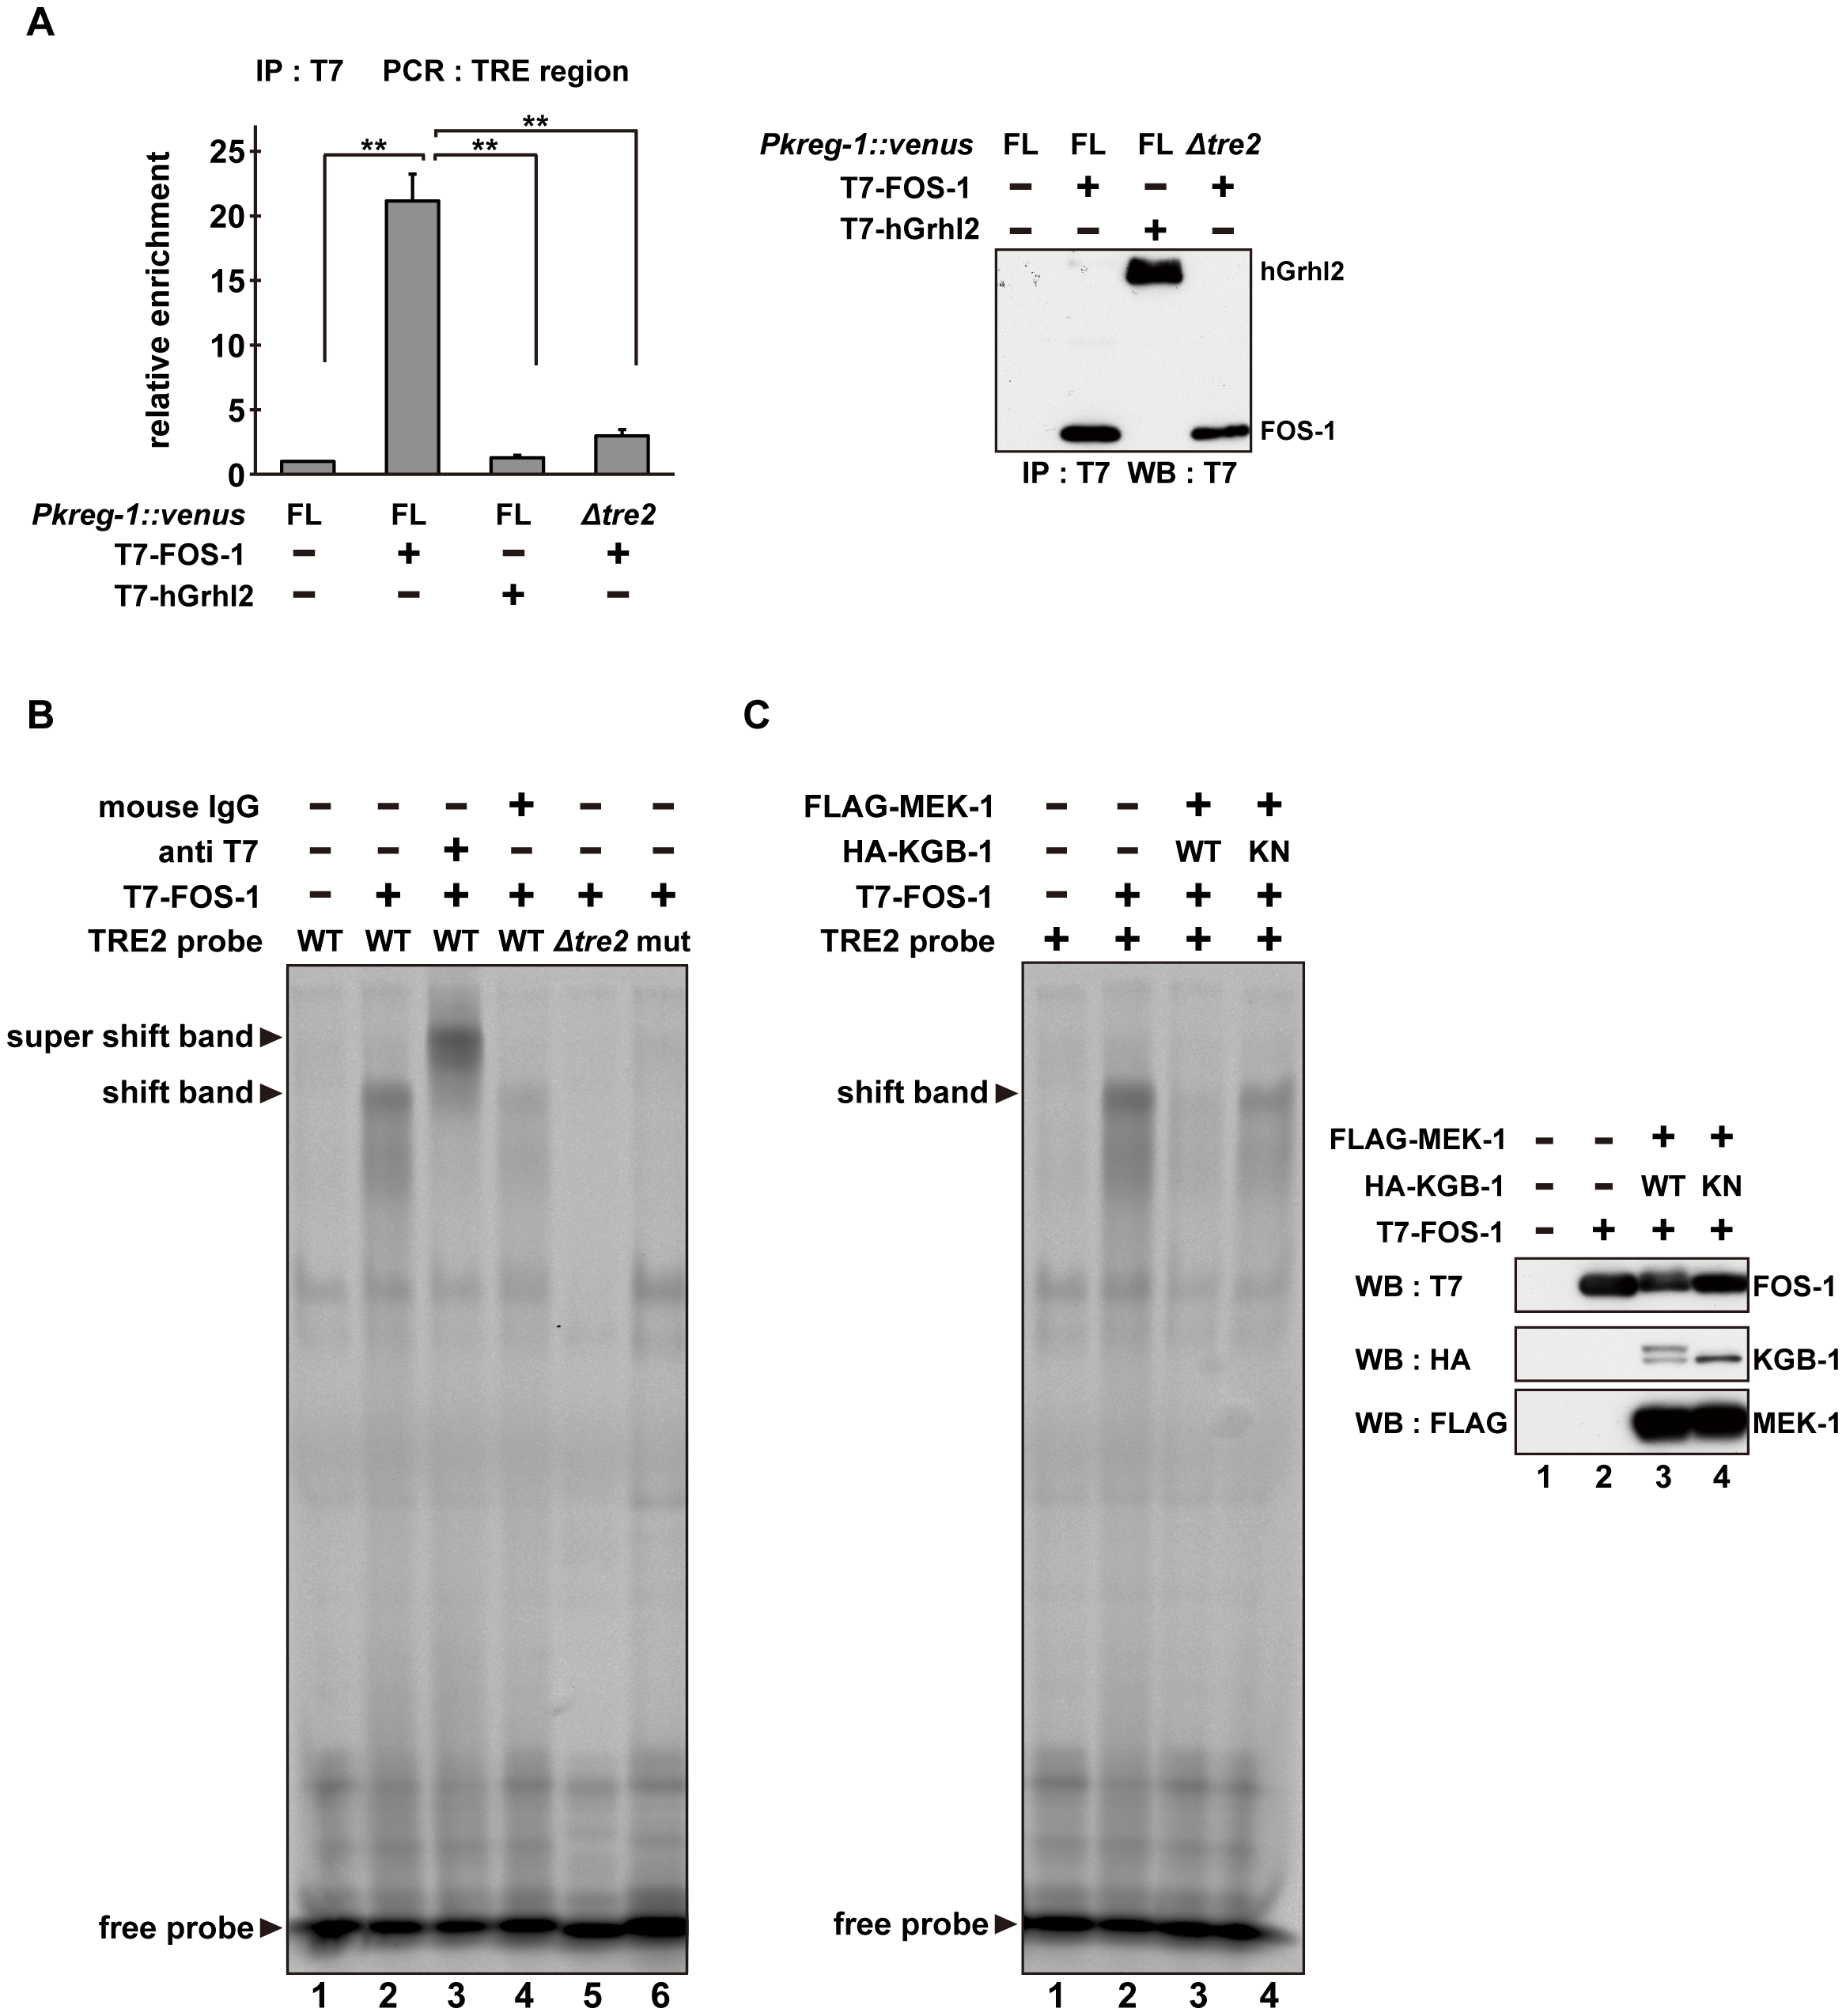 The DNA binding activity of FOS-1 is inhibited by KGB-1-mediated phosphorylation.